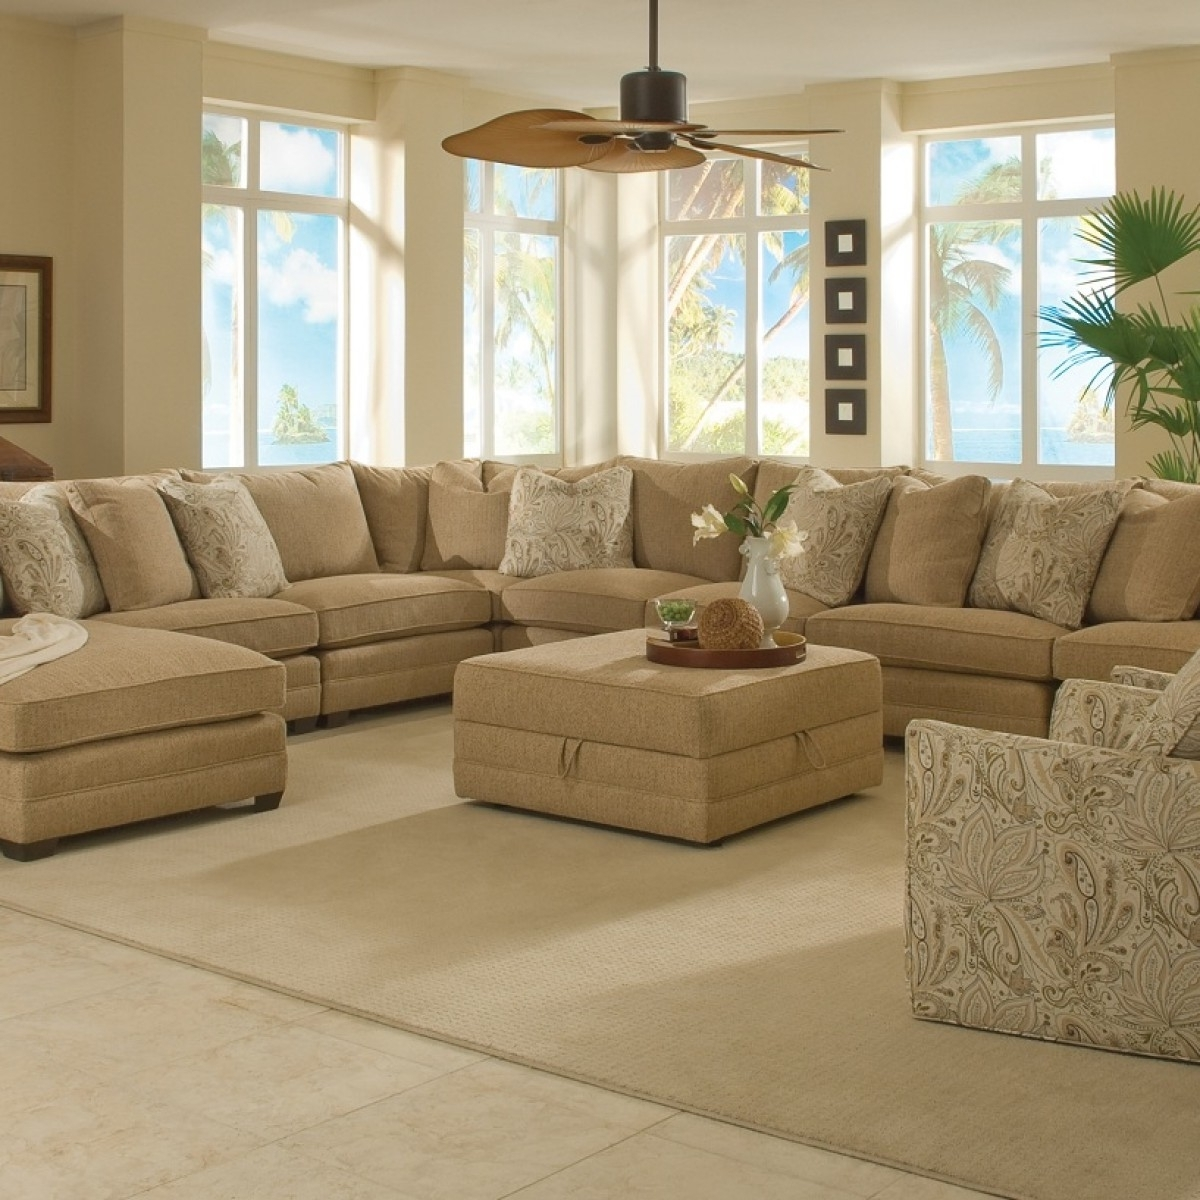 Newest Deep Cushion Sofas Regarding Factors To Consider Before Buying An Extra Large Sectional Sofa (View 19 of 20)